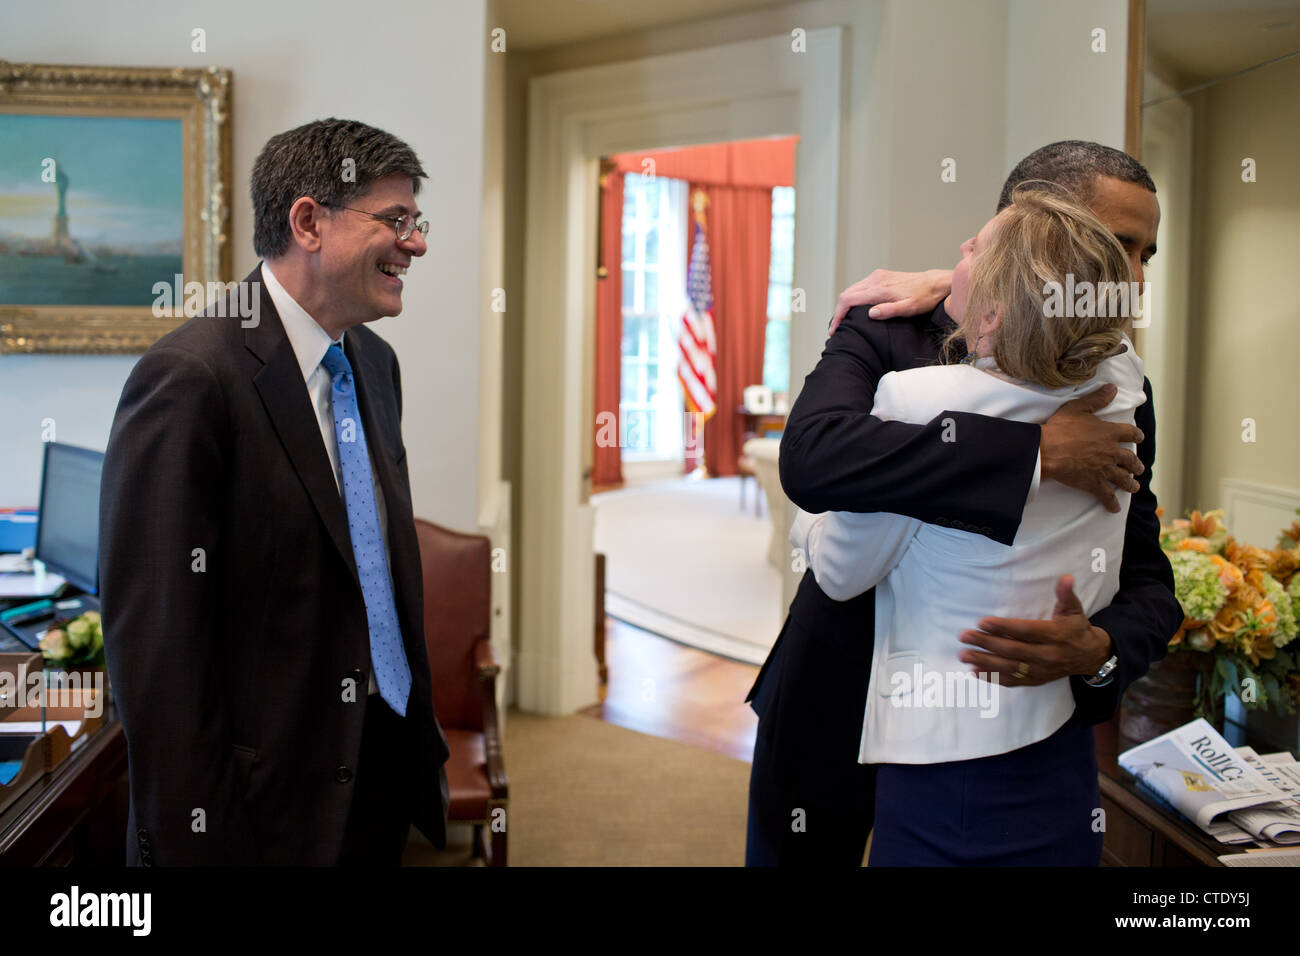 US President Barack Obama is congratulated by Chief of Staff Jack Lew and Kathryn Ruemmler, Counsel to the President, Stock Photo